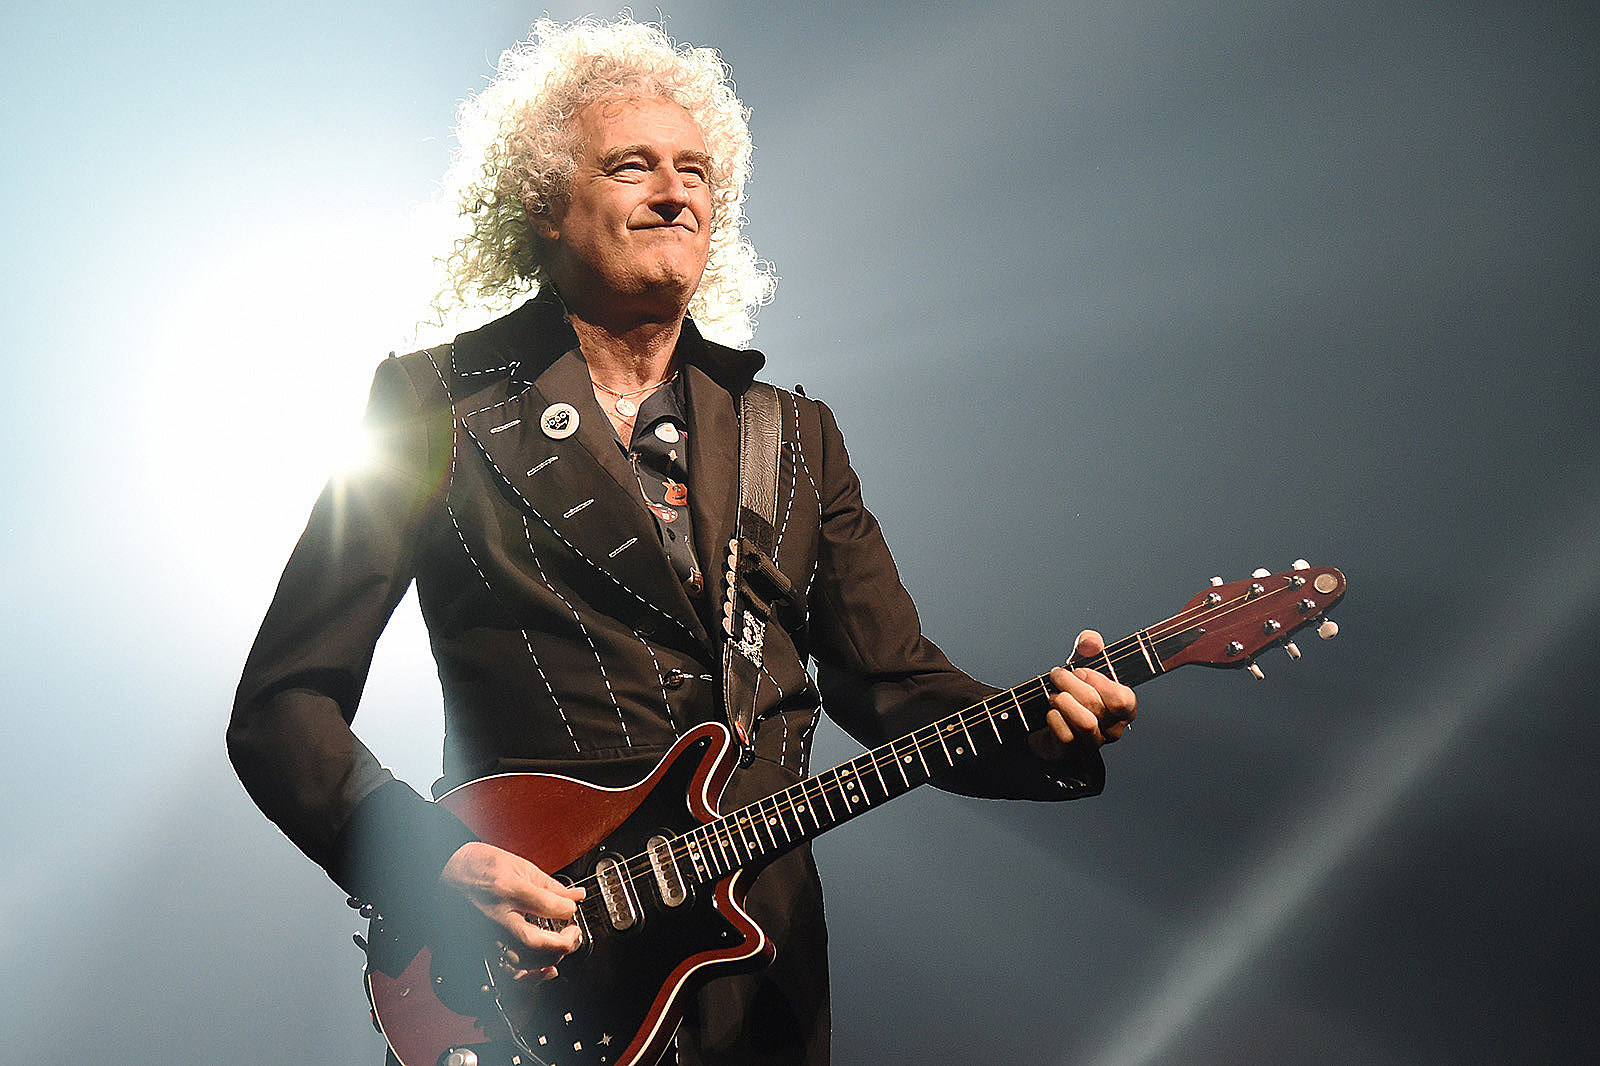 Queen's Brian May on Anti-Vaxxers: 'I Think They're Fruitcakes'